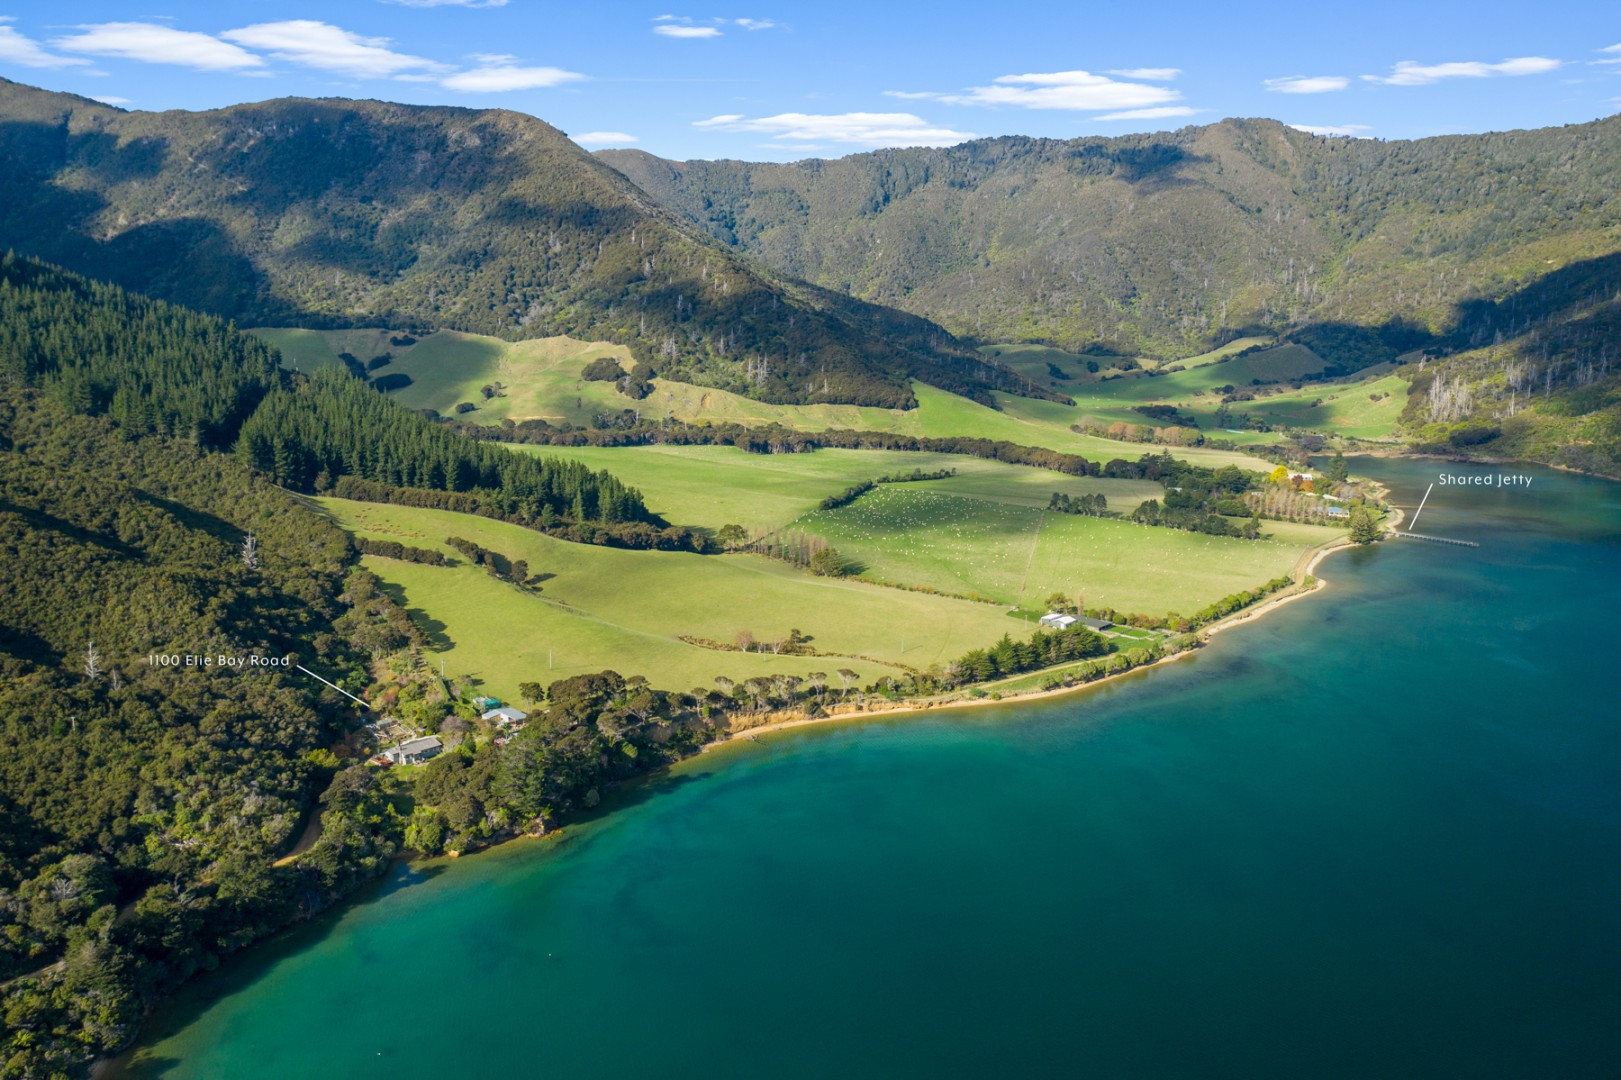 1100 Elie Bay Road - Crail Bay, Marlborough Sounds #2 -- listing/11168/a-v2.jpeg